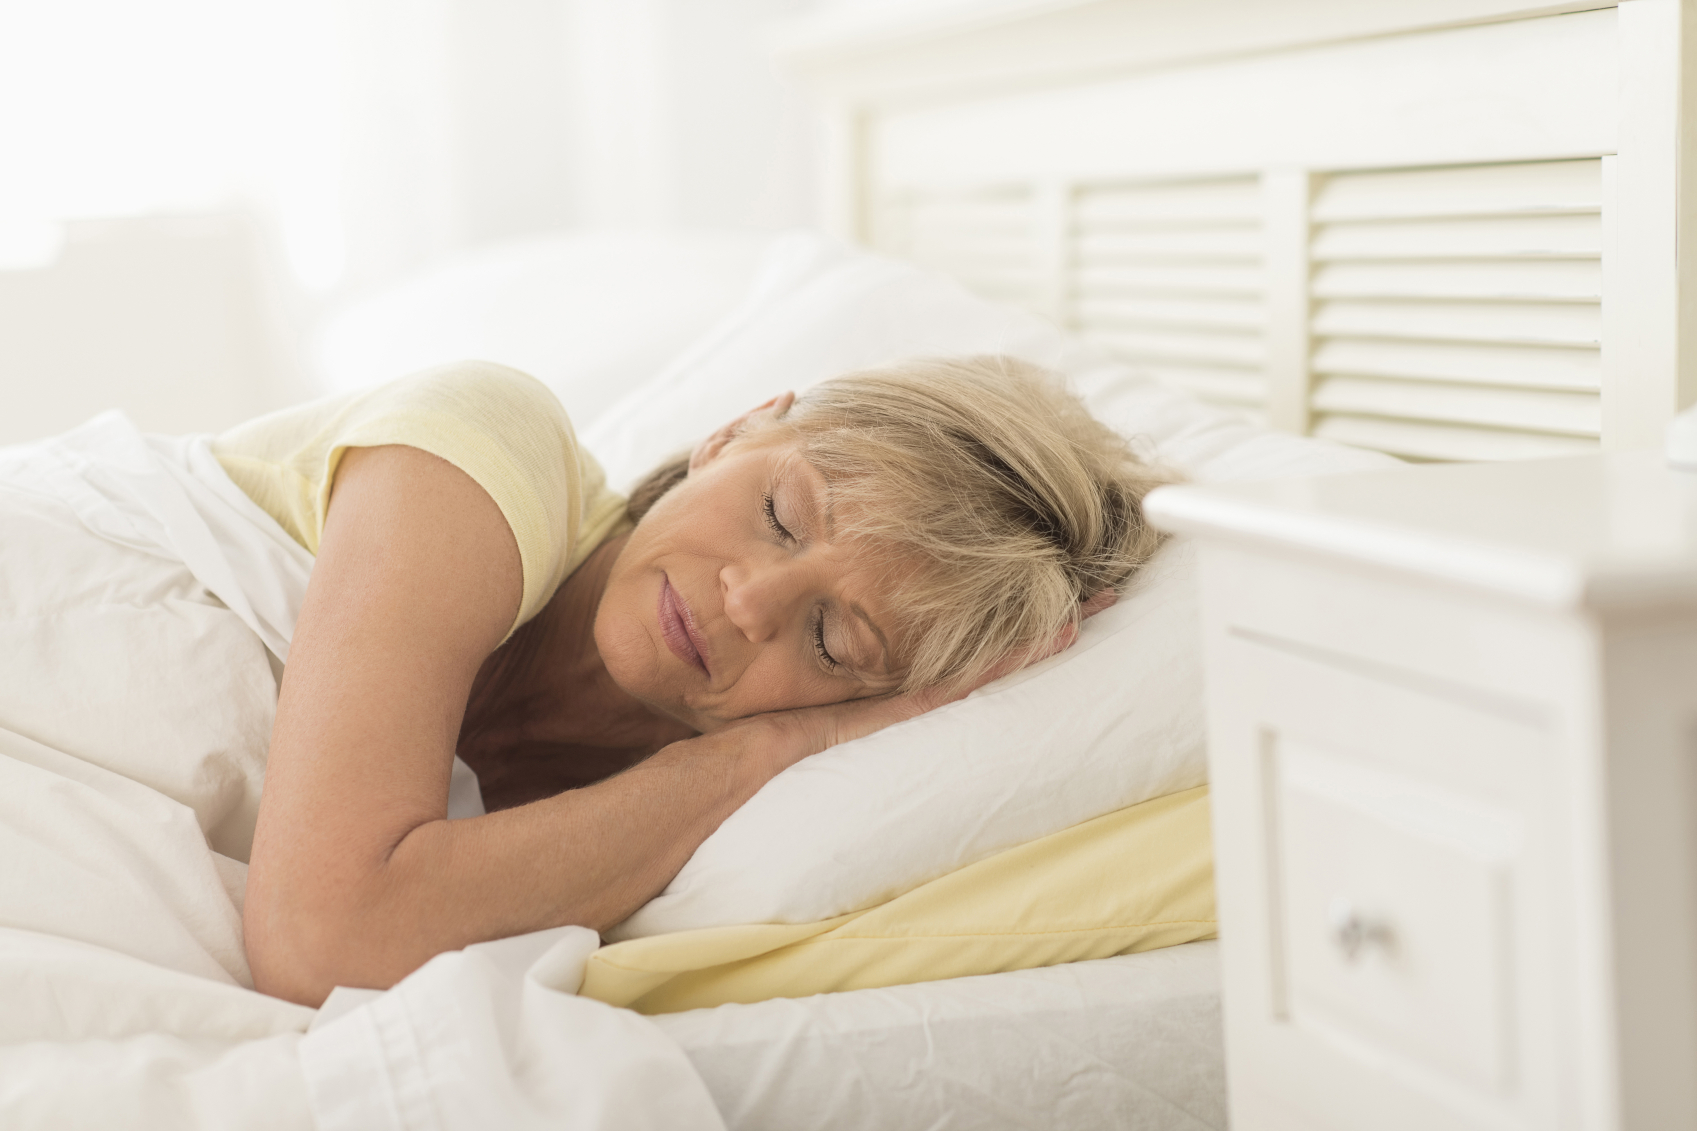 Sleeping in a certain position may protect you from Alzheimer's, a new study finds.